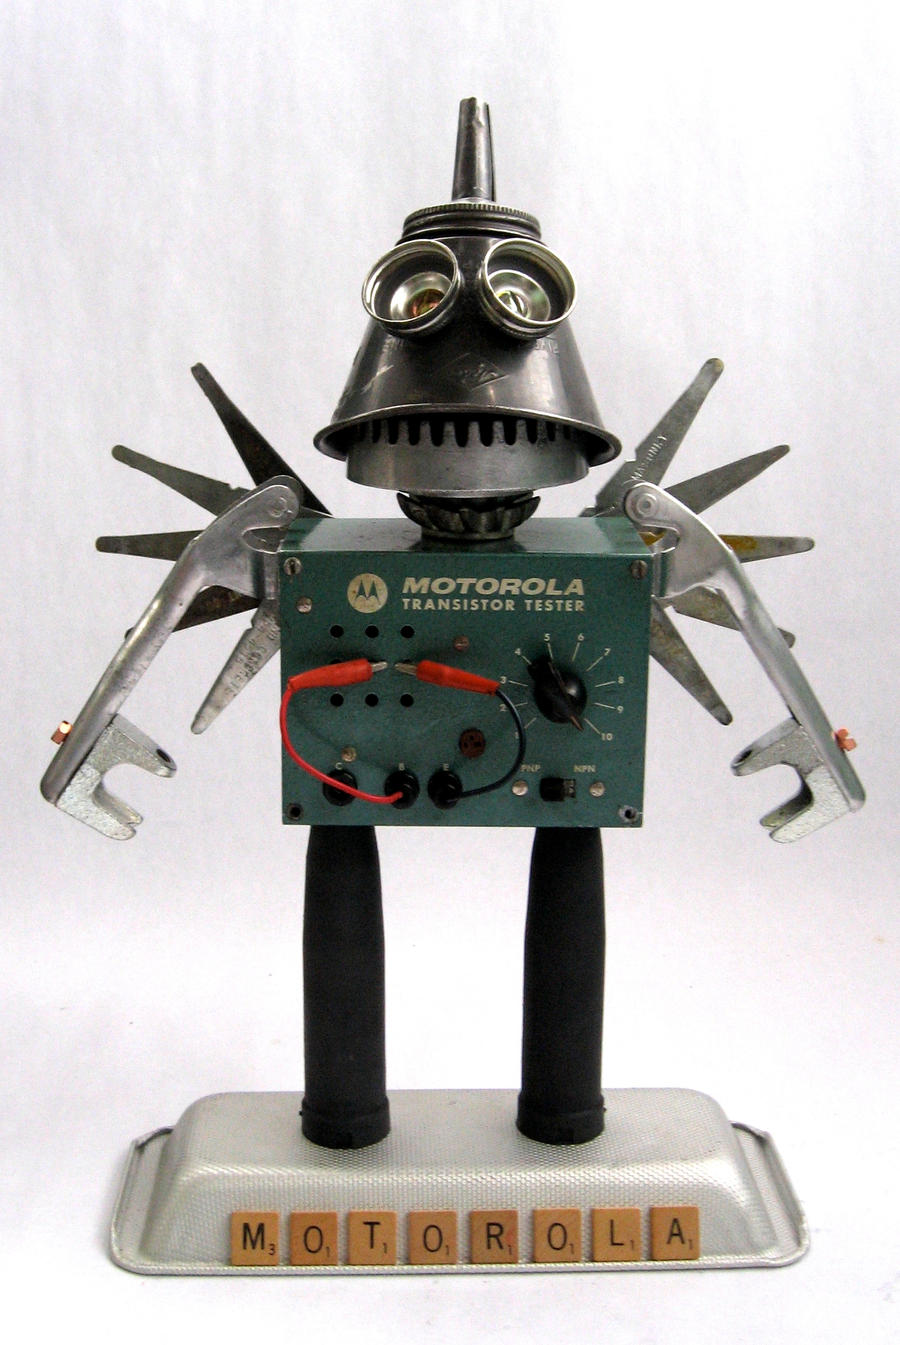 Motorola - Robot Sculpture by adoptabot